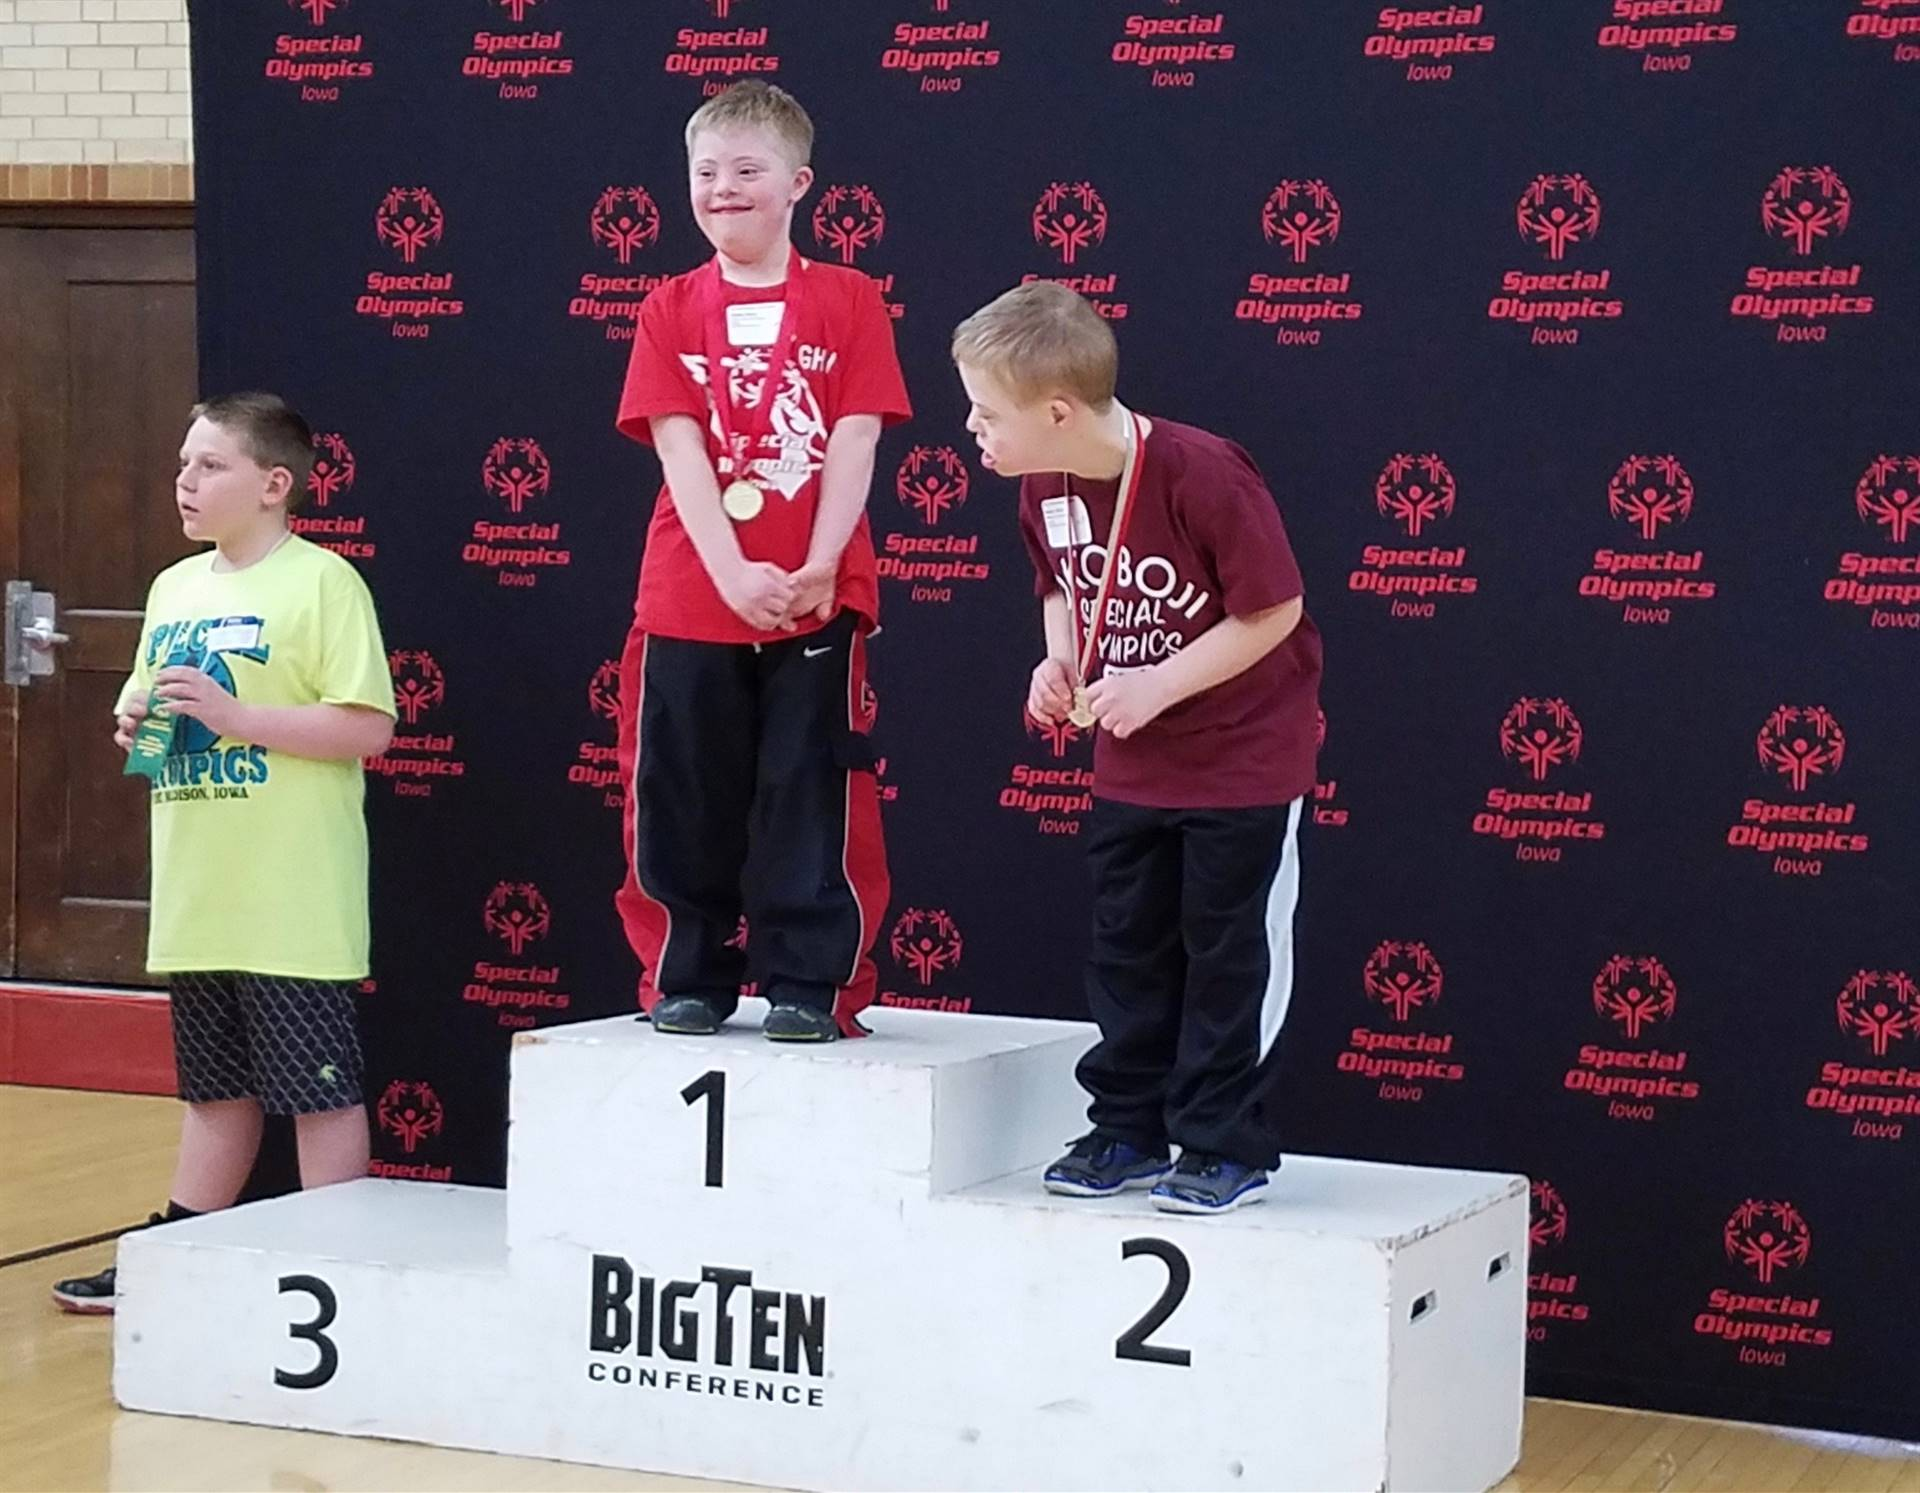 Special Olympics elementary students on podium